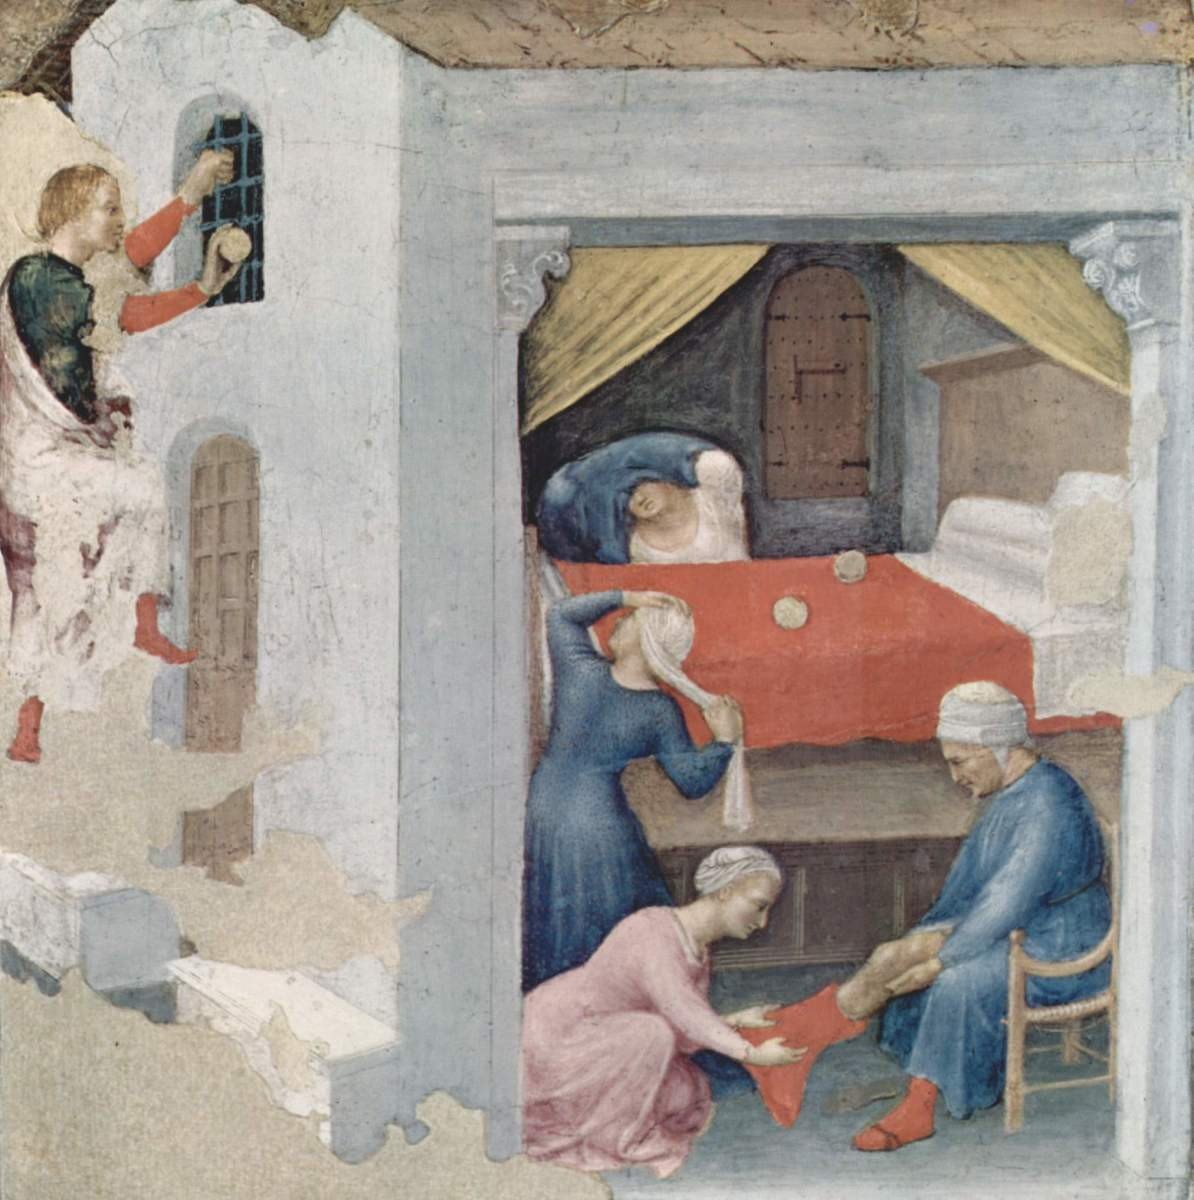 A fifteenth century depiction of St Nicholas surreptiously providing a dowry to one of the three daughters.